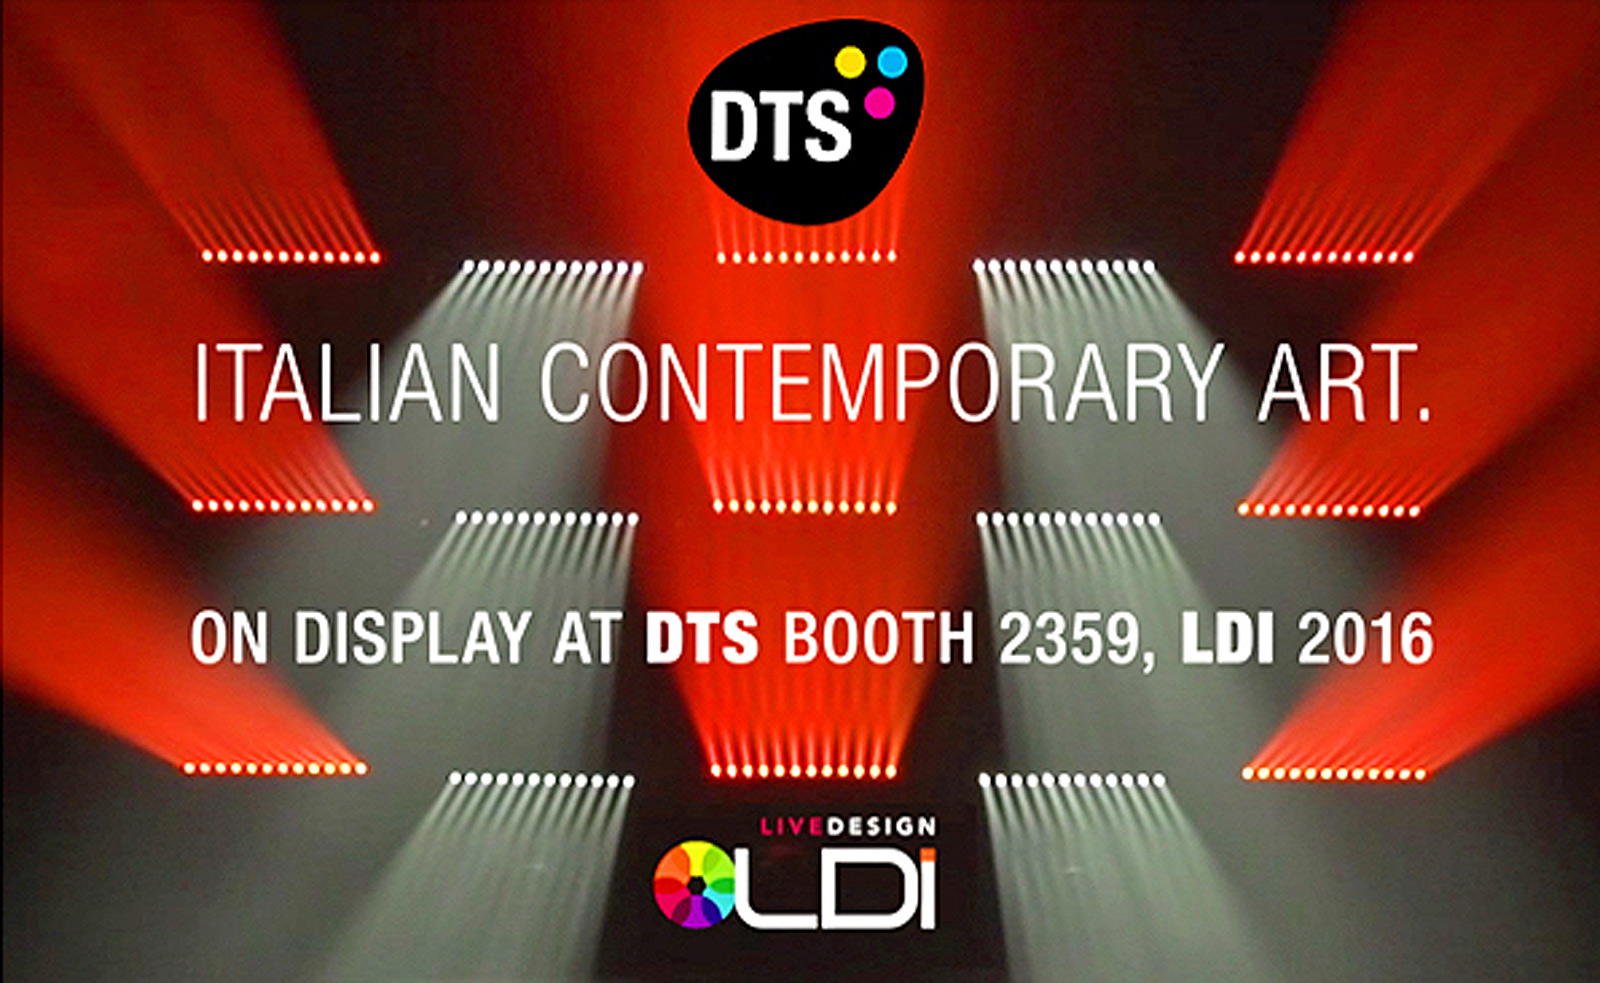 DTS focus on innovation at LDI 2016